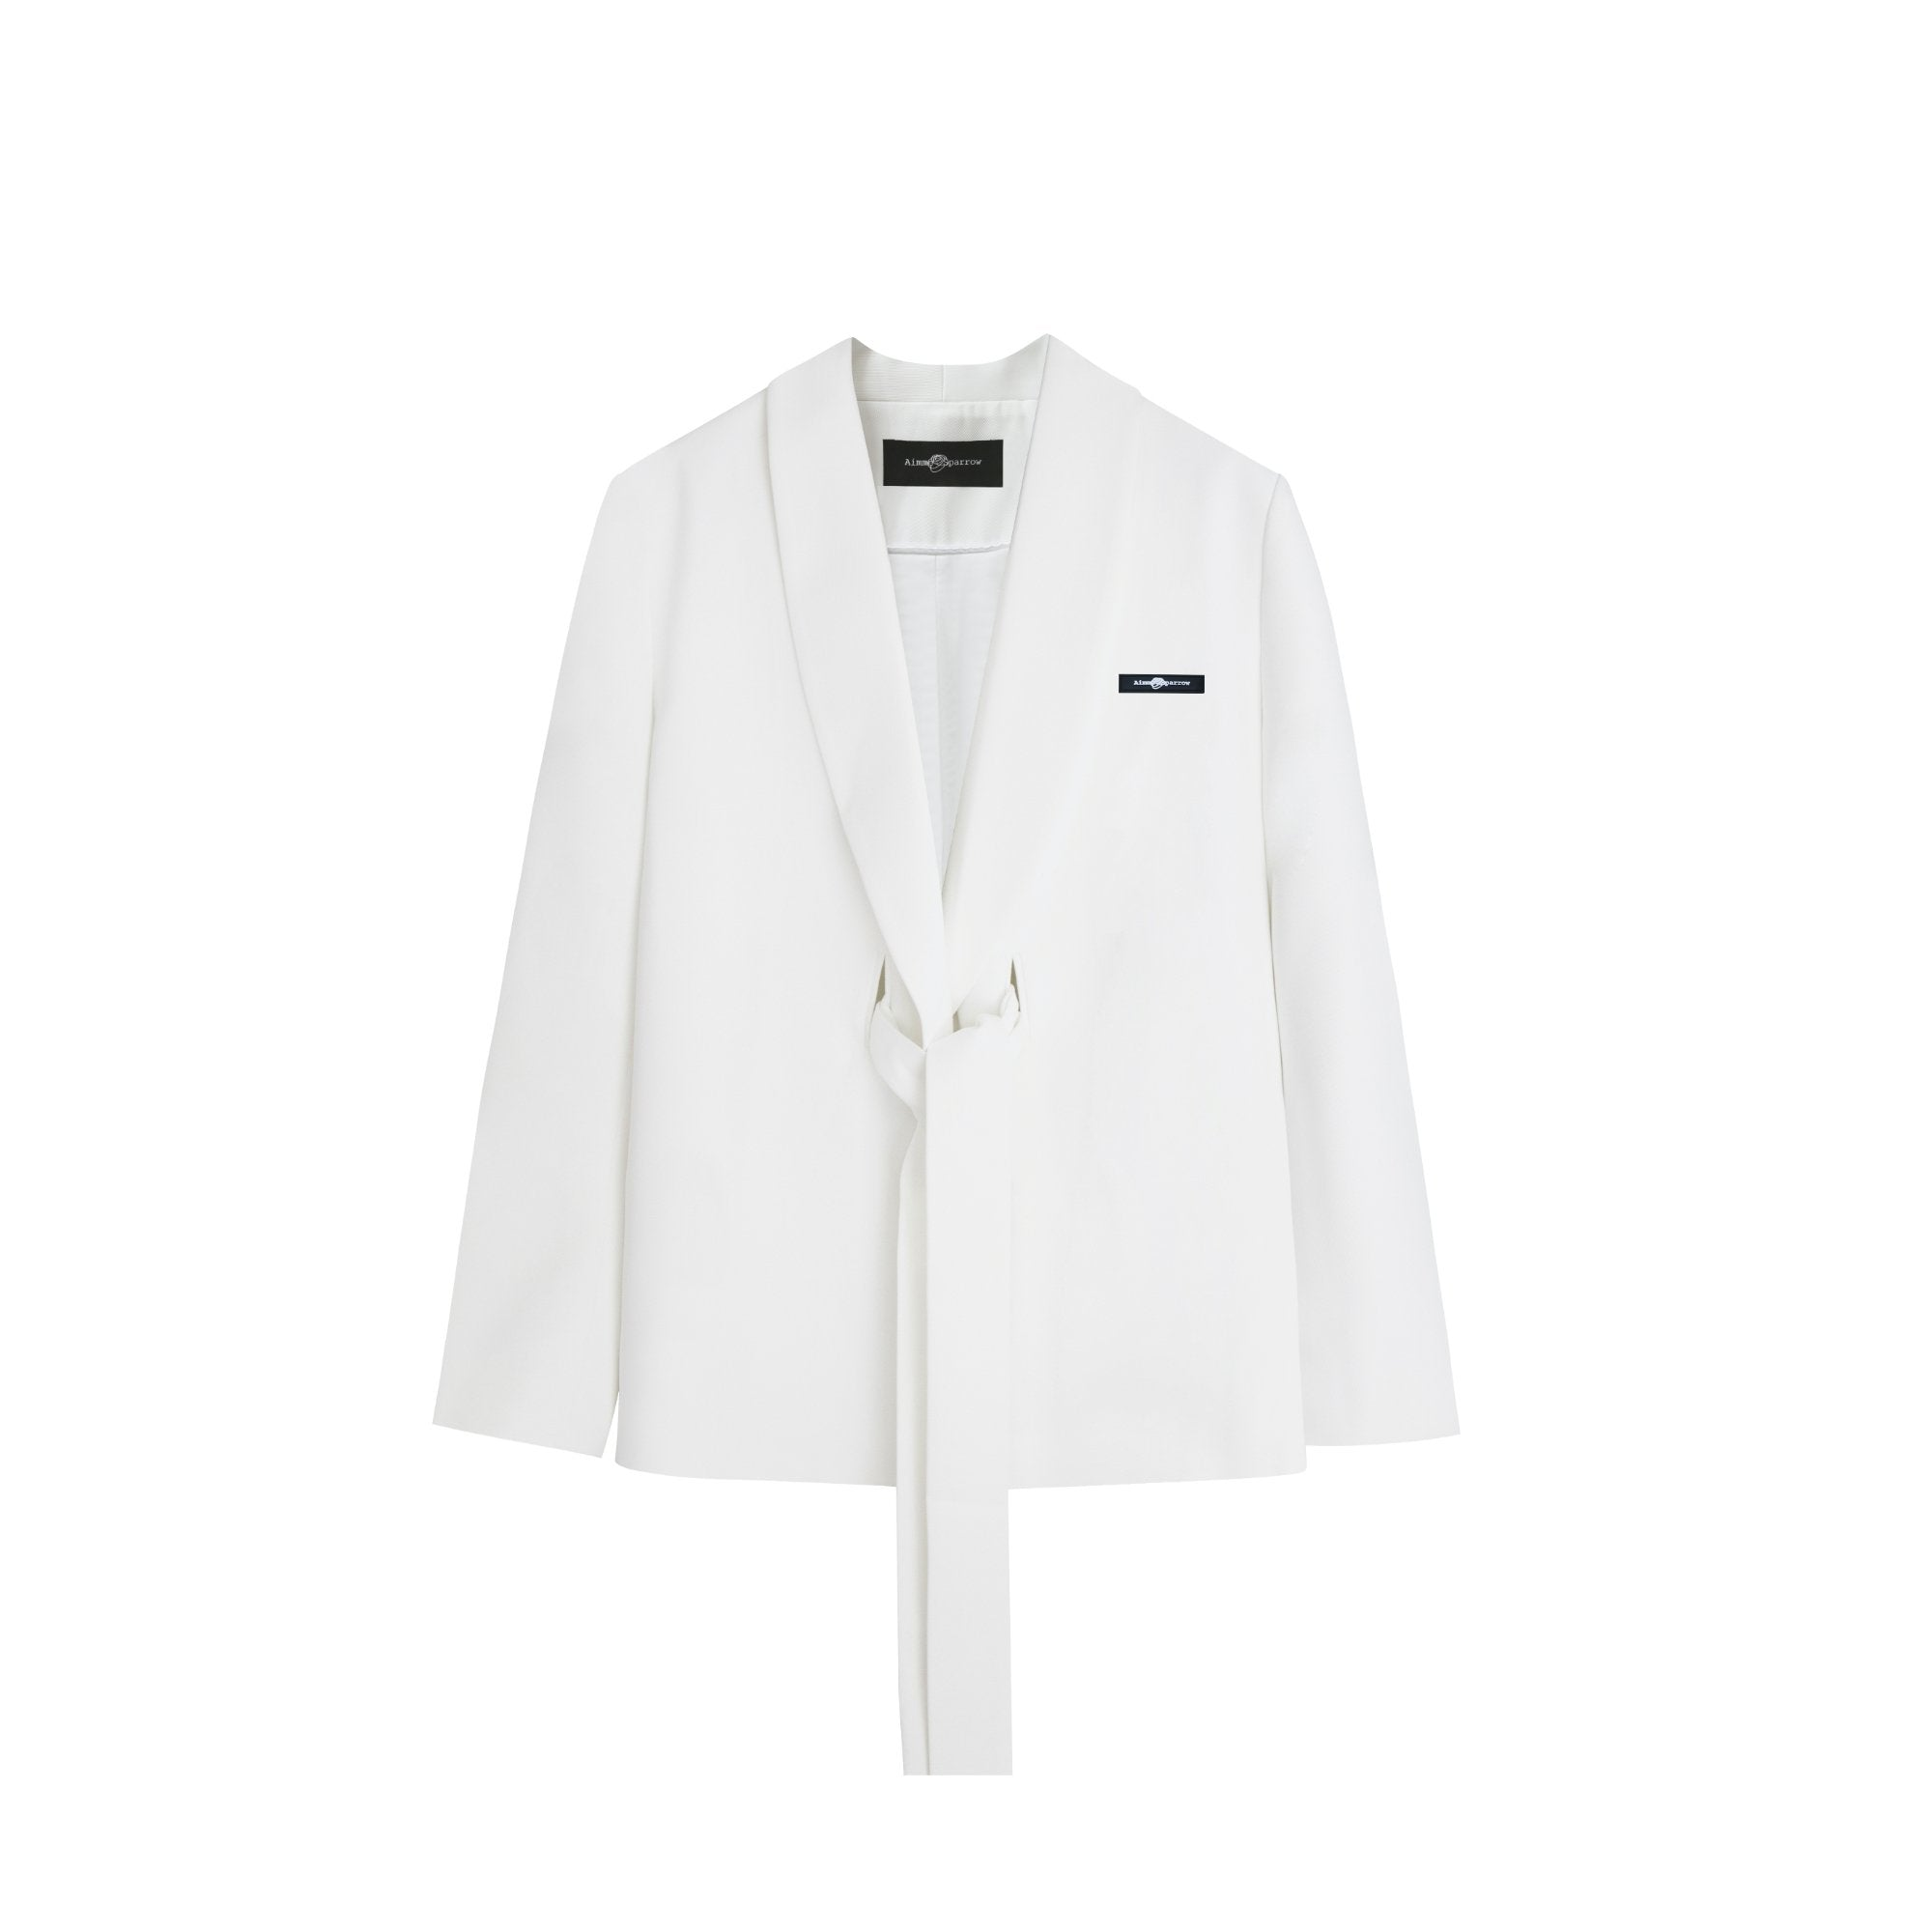 AIMME SPARROW Aimme Sparrow White Logo Suit | MADA IN CHINA